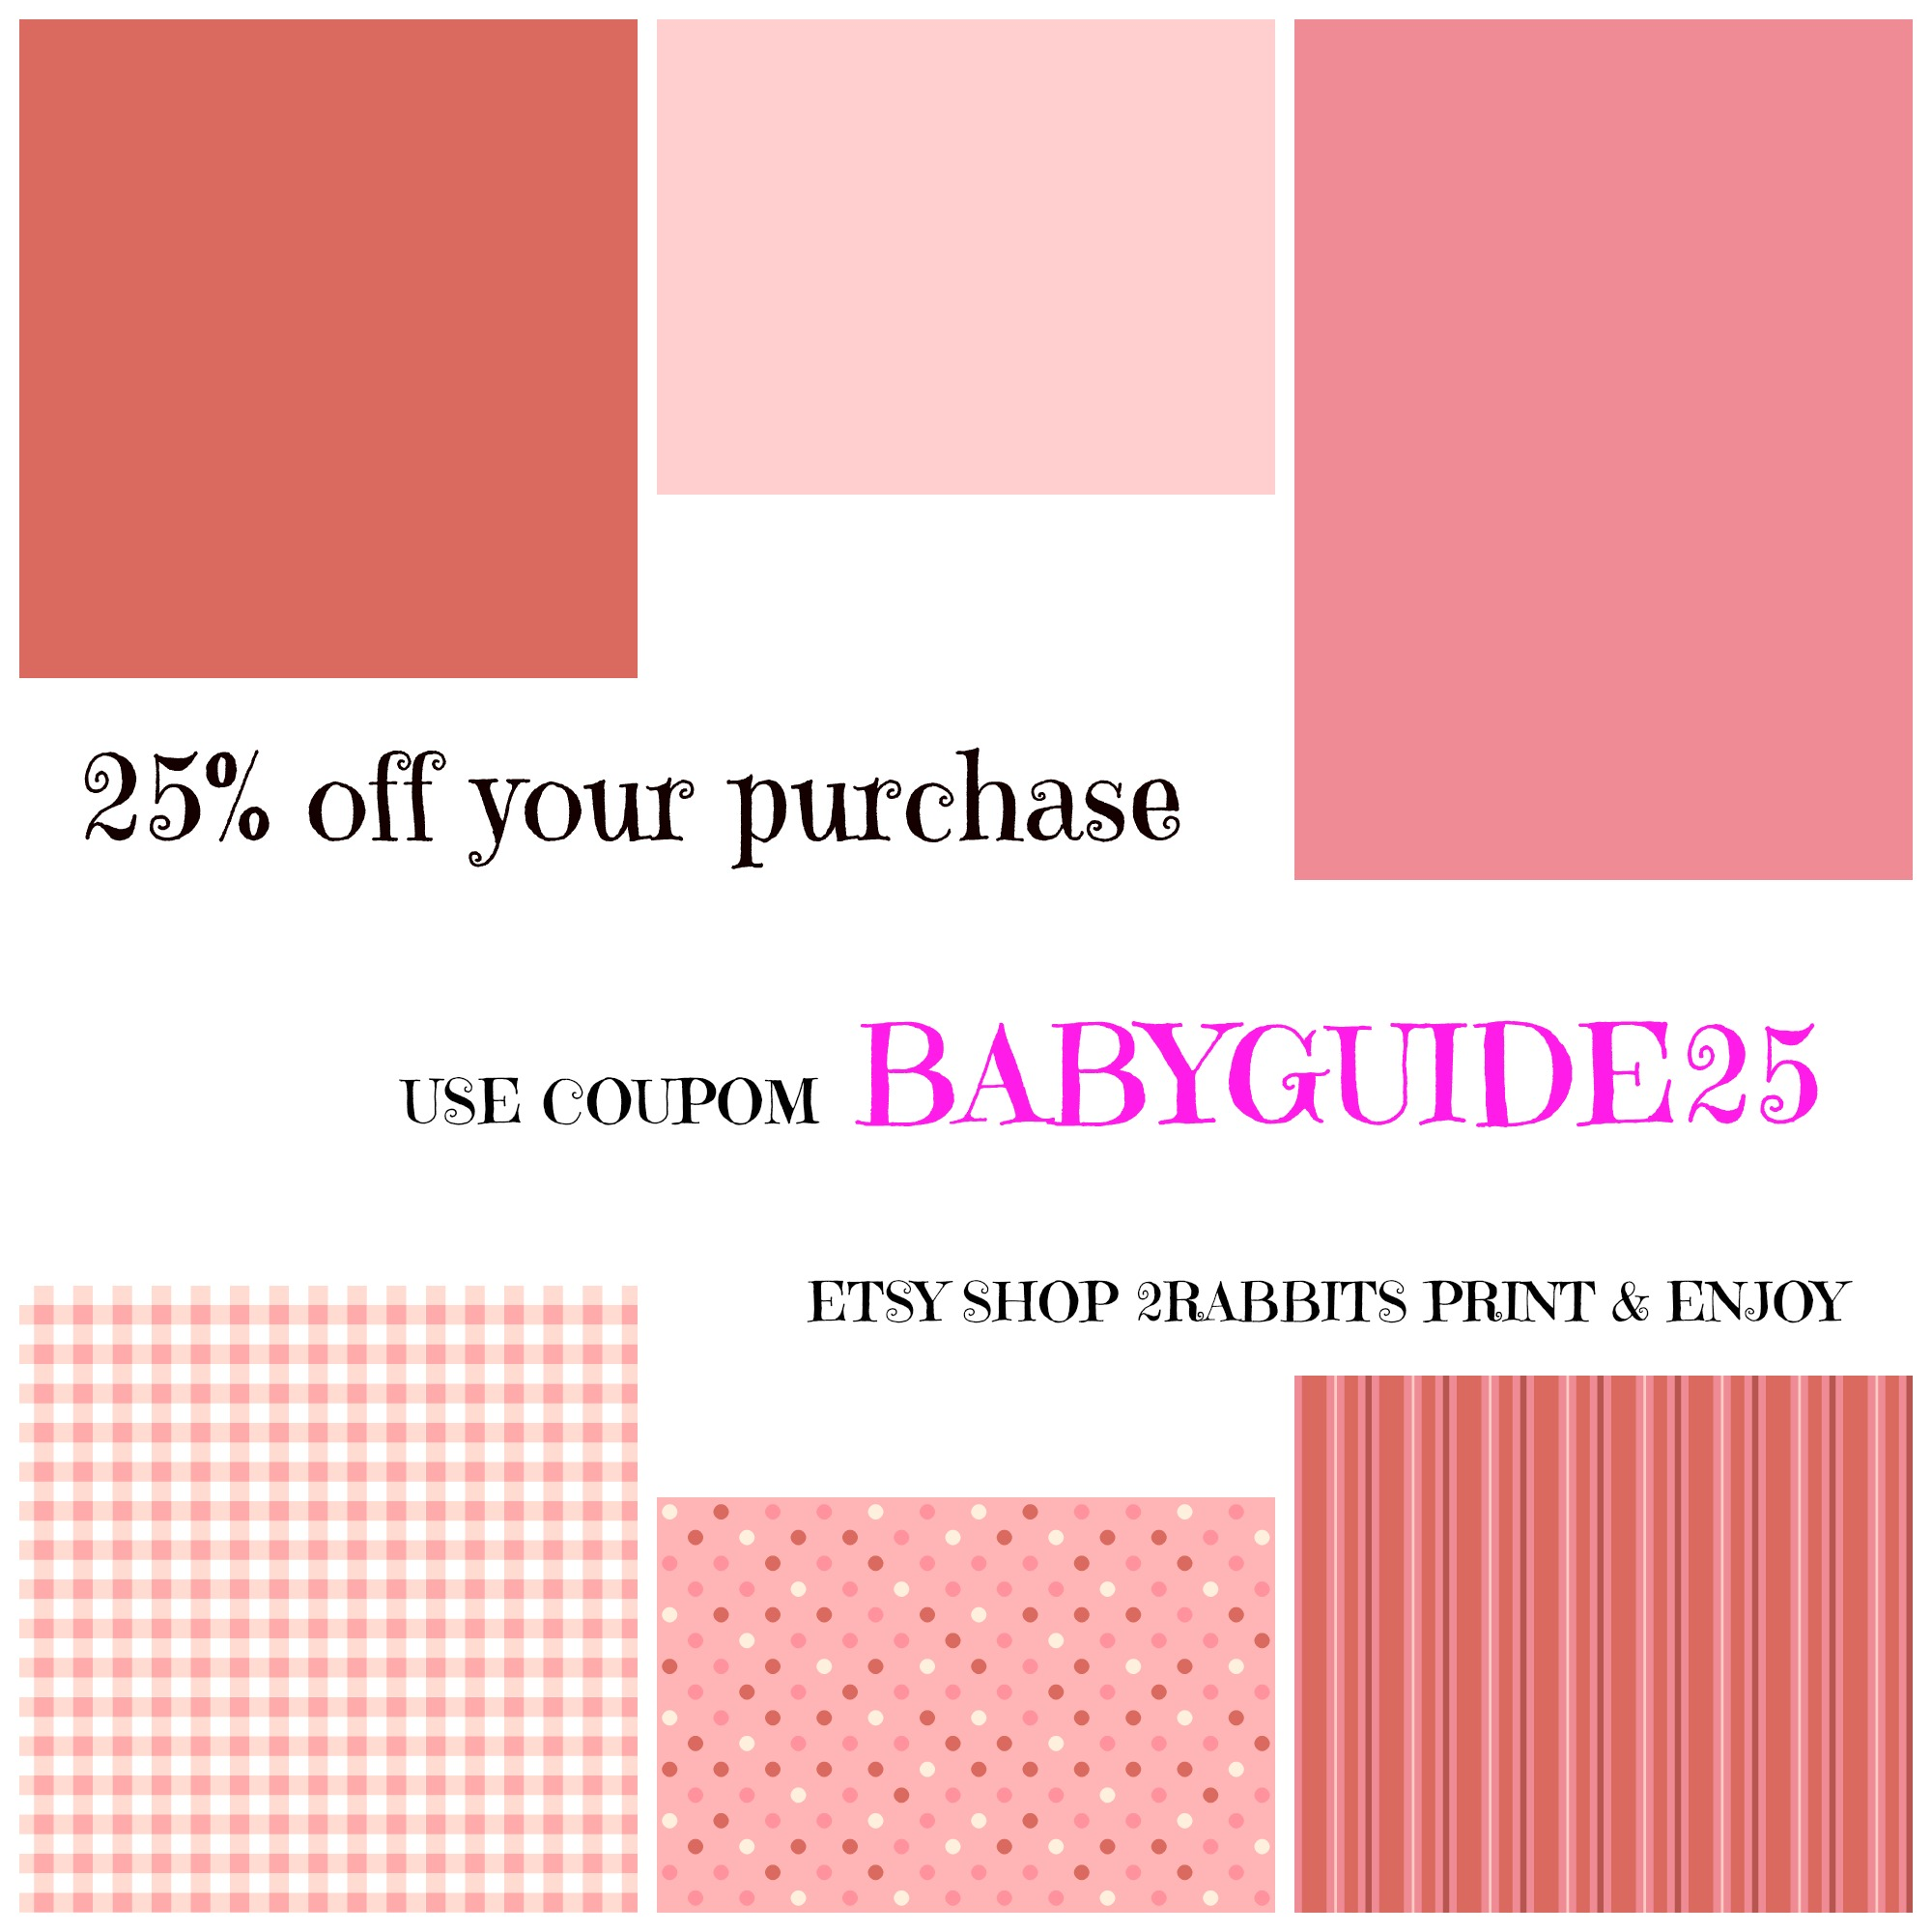 Etsy Coupon for My Practical Baby Guide Visitors